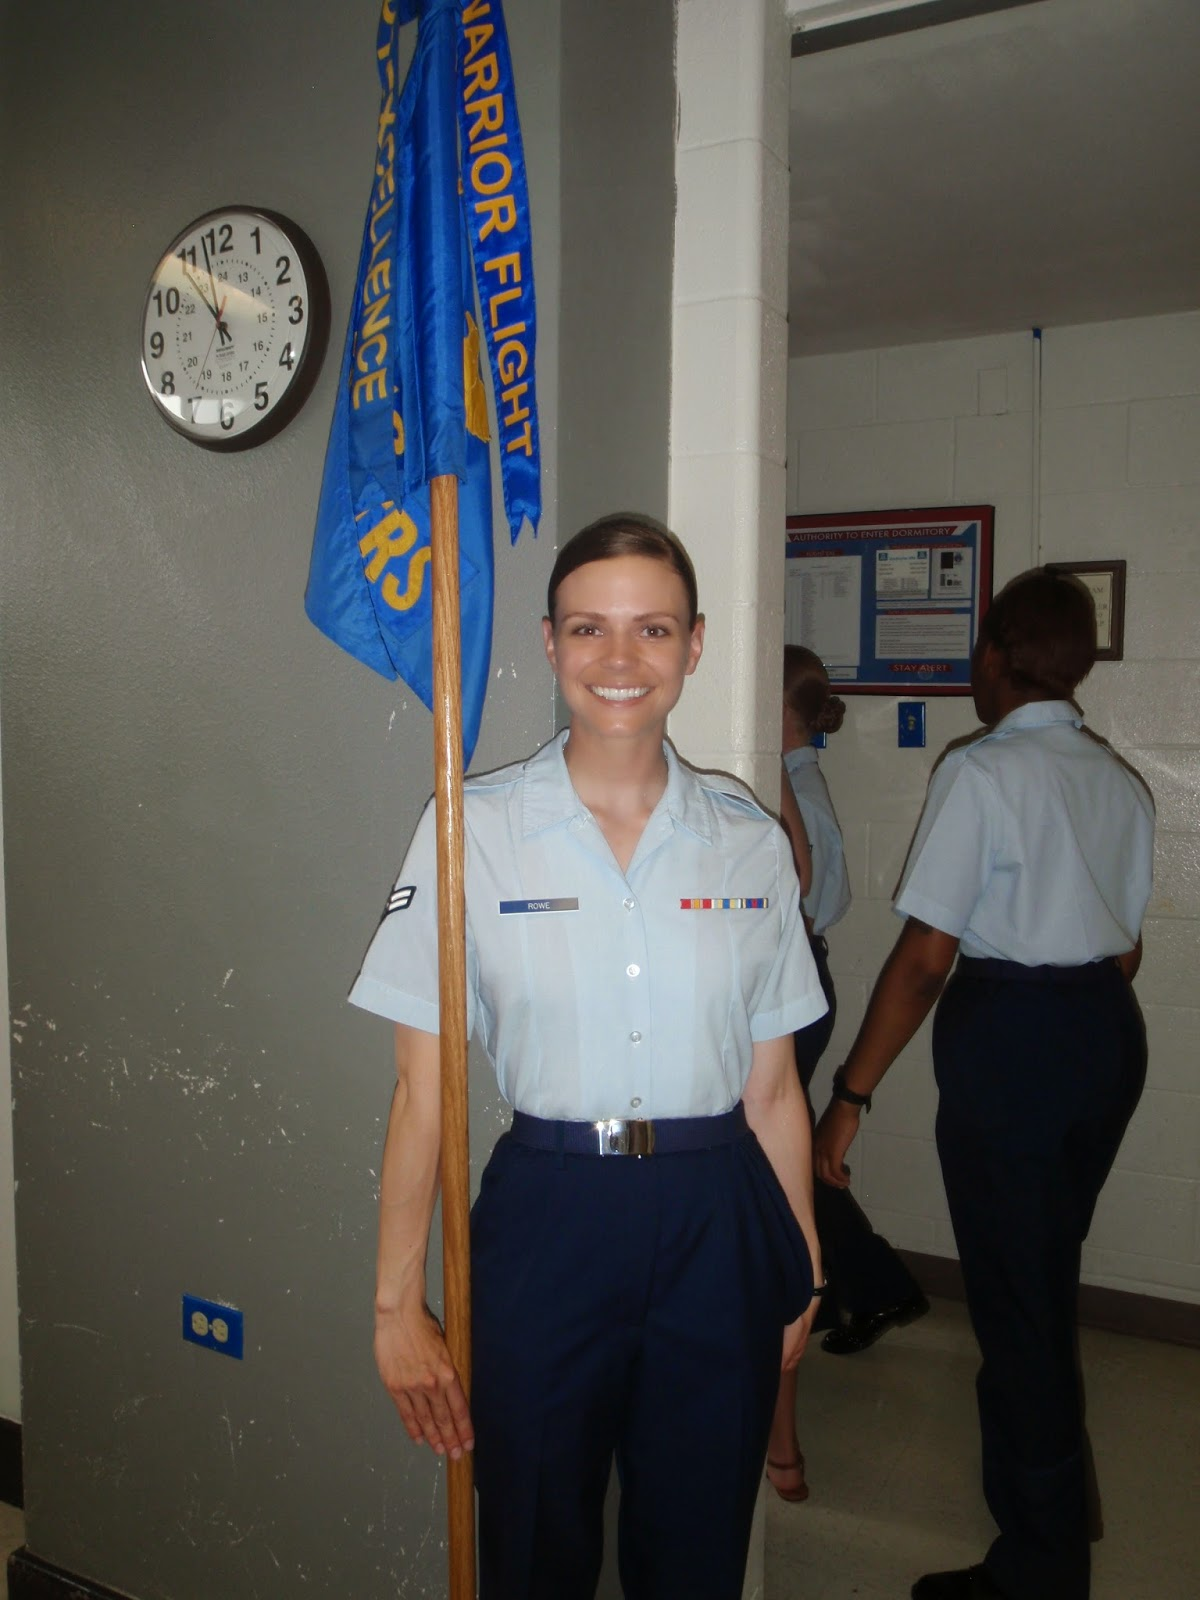 Air Force BMT Guideon Bearer